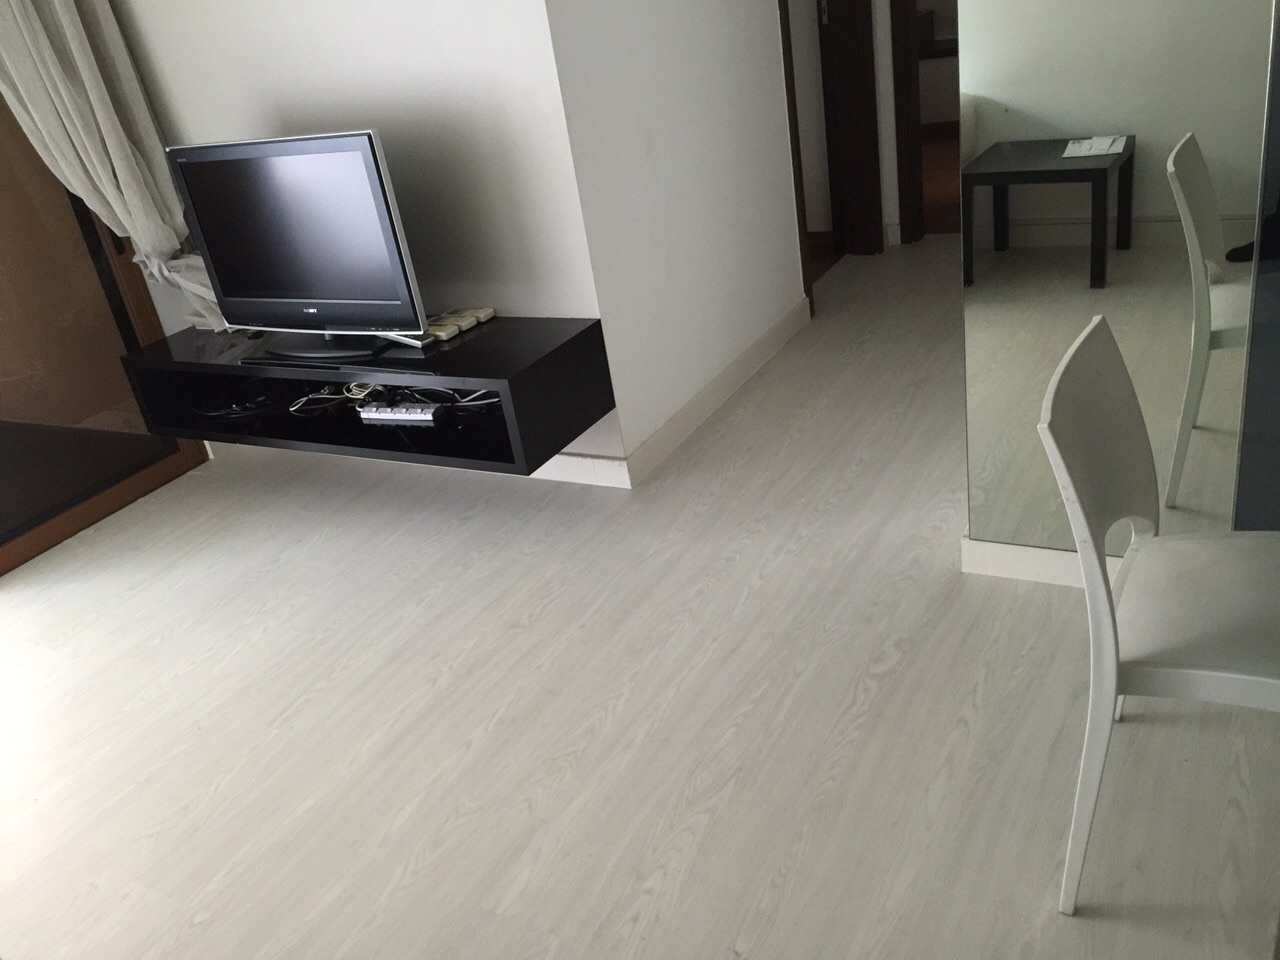 What Know About Resilient Flooring Singapore